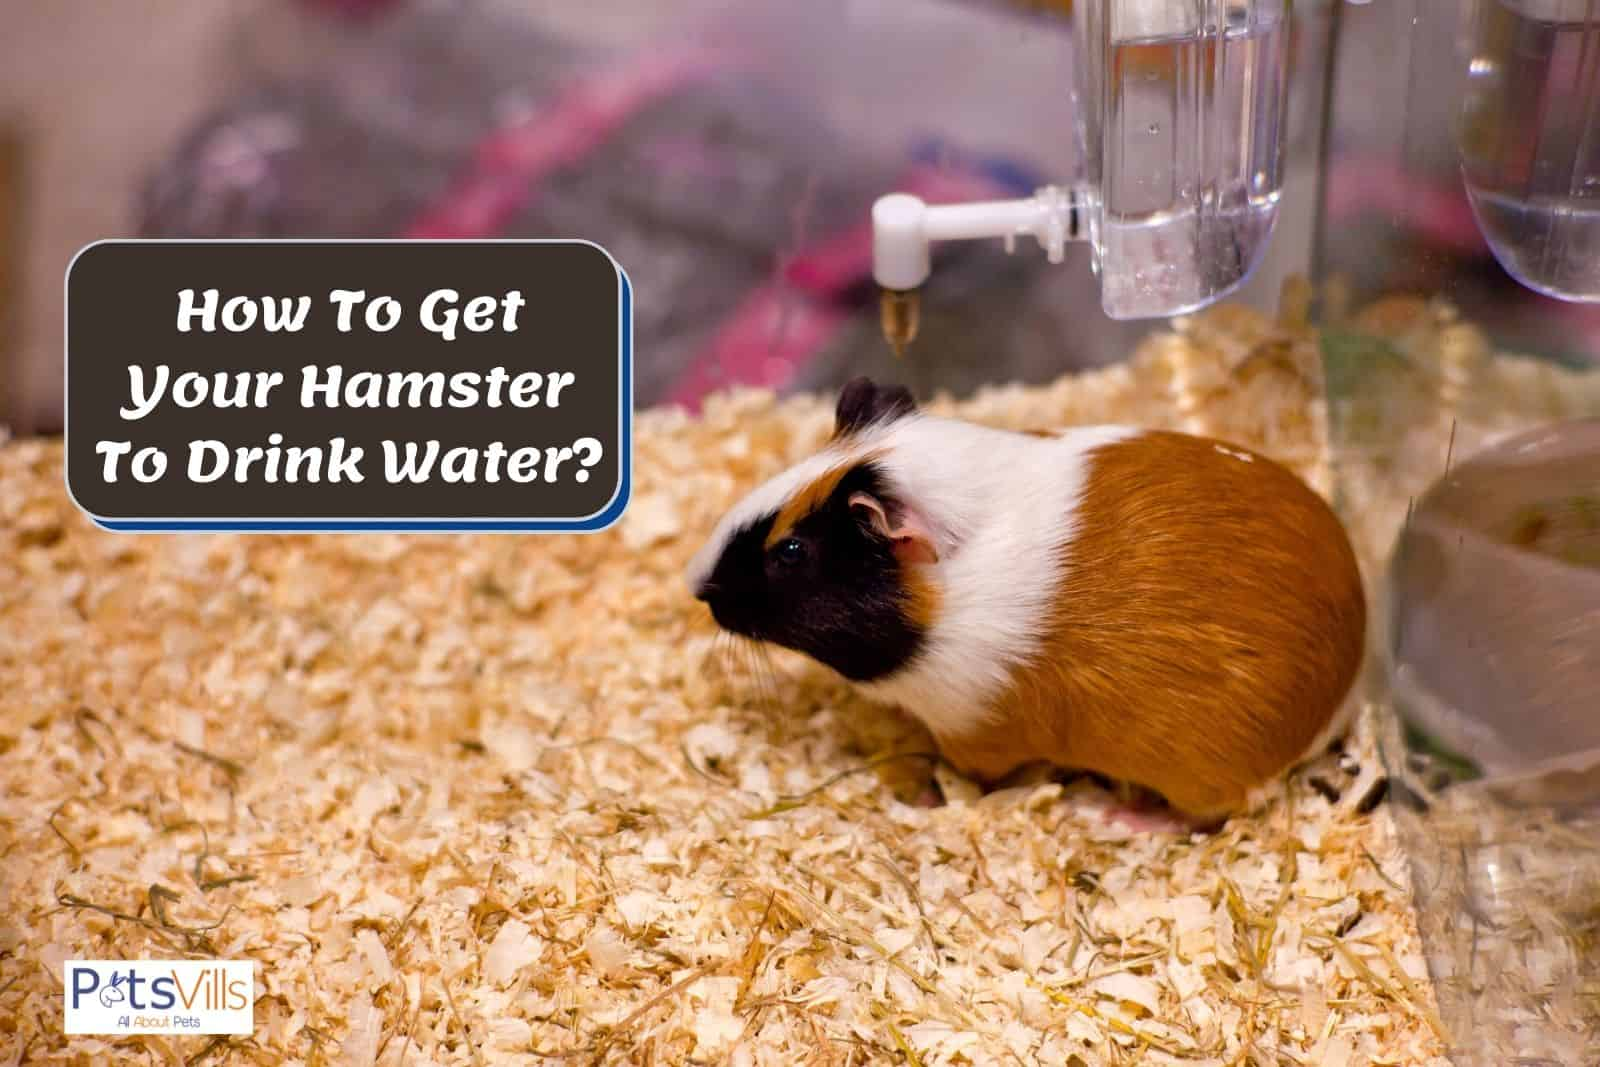 a hamster in cage with water faucet but How To Get Your Hamster To Drink Water